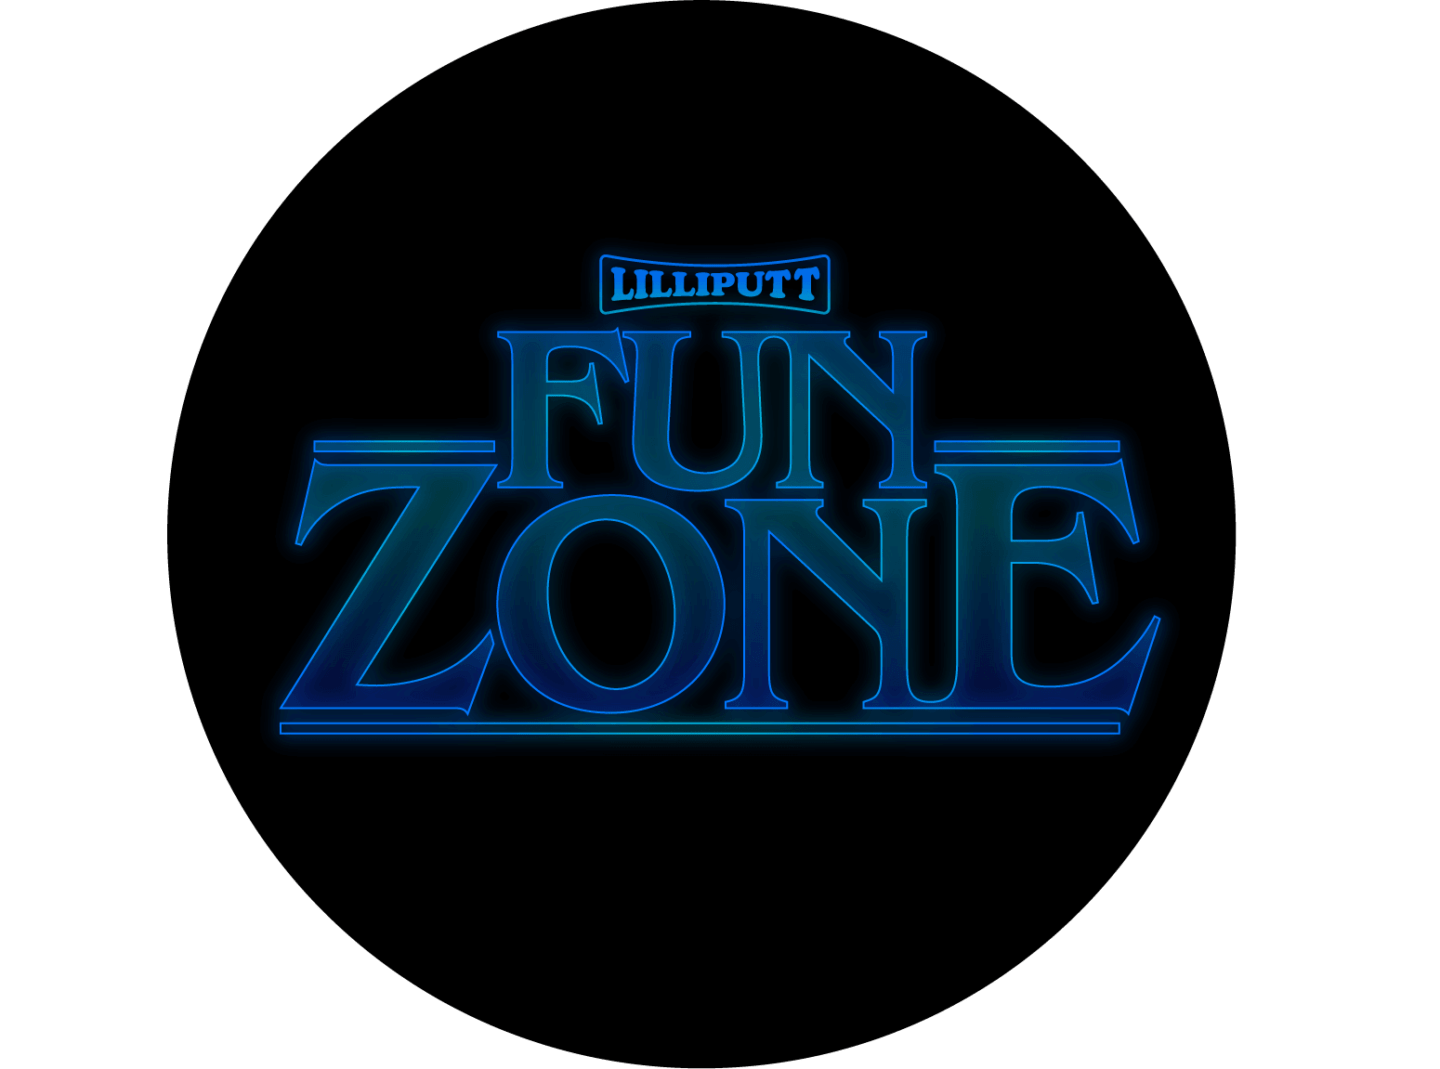 Lilliputt Fun Zone logo